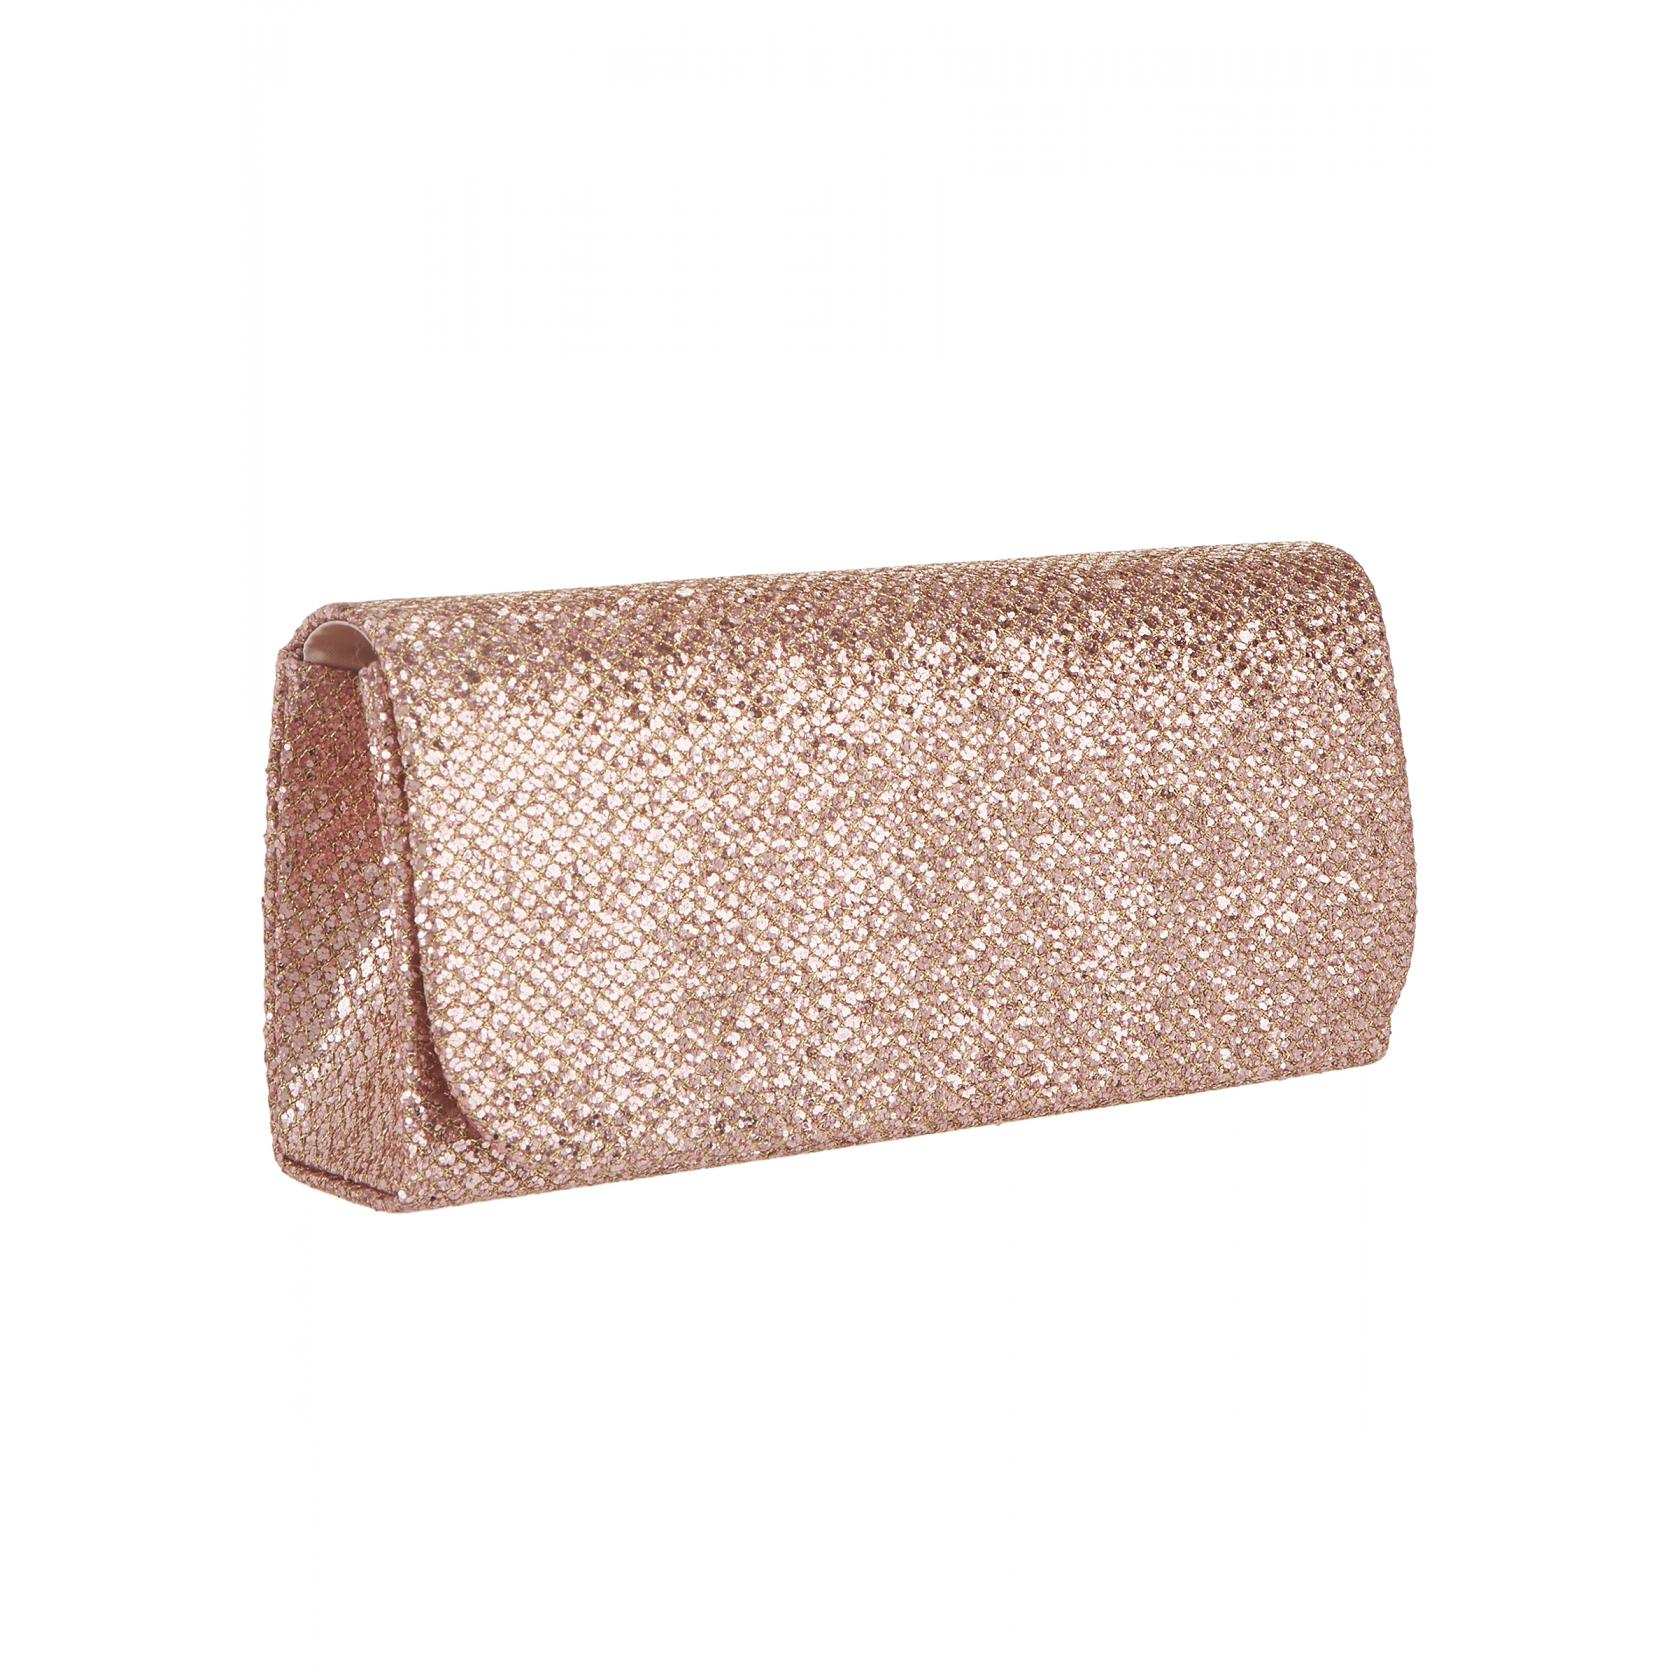 Mascara Rose Gold Snake Clutch Bag